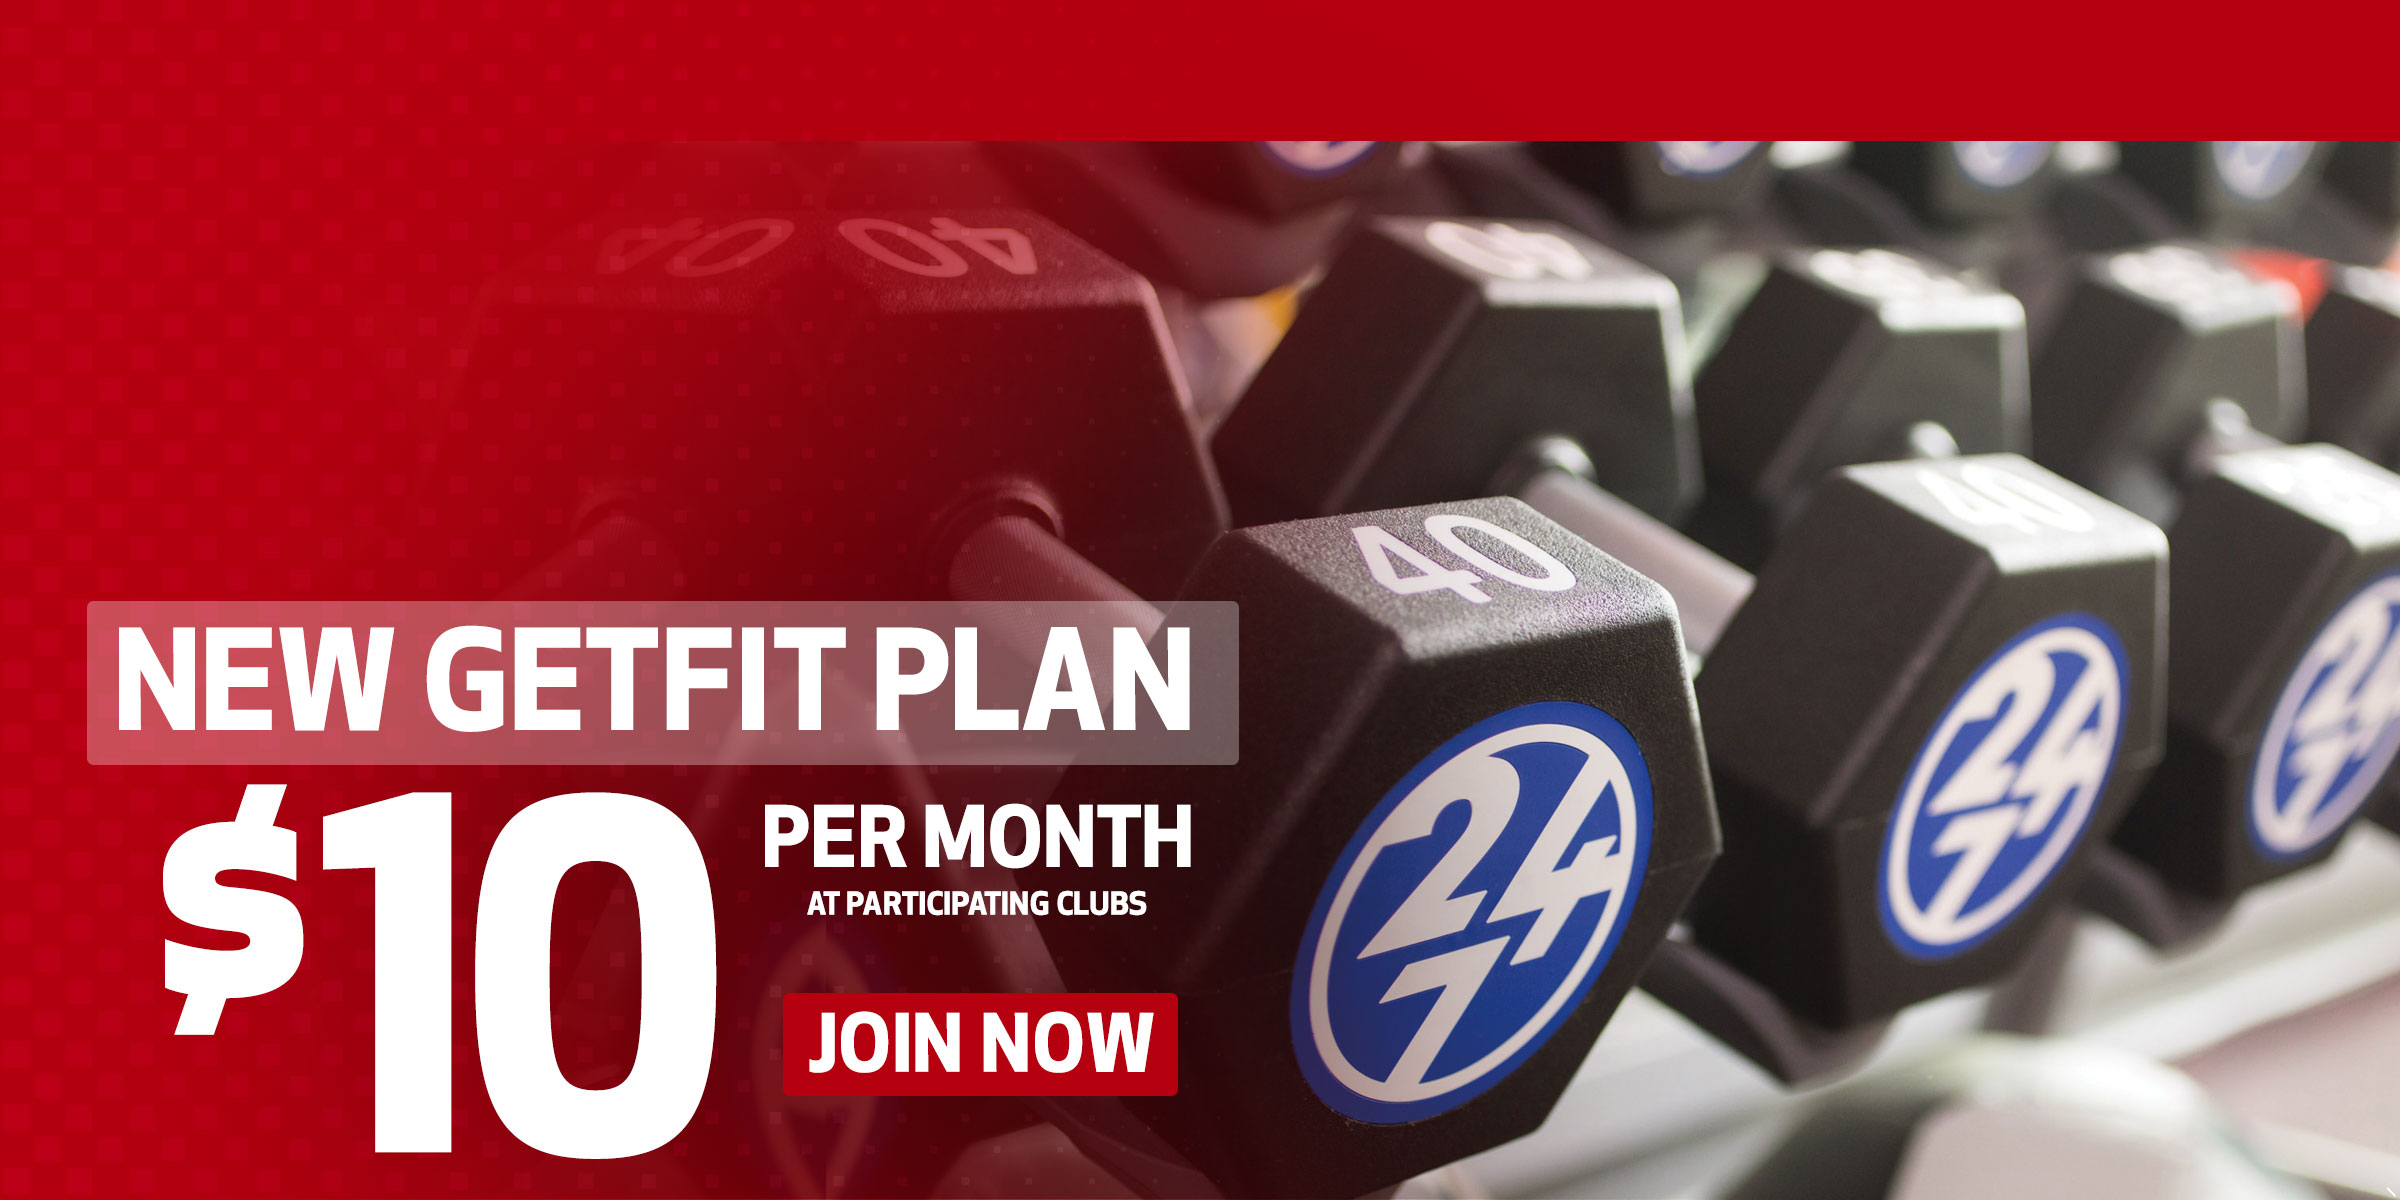 New Workout Anytime GetFit Membership: $10 a Month